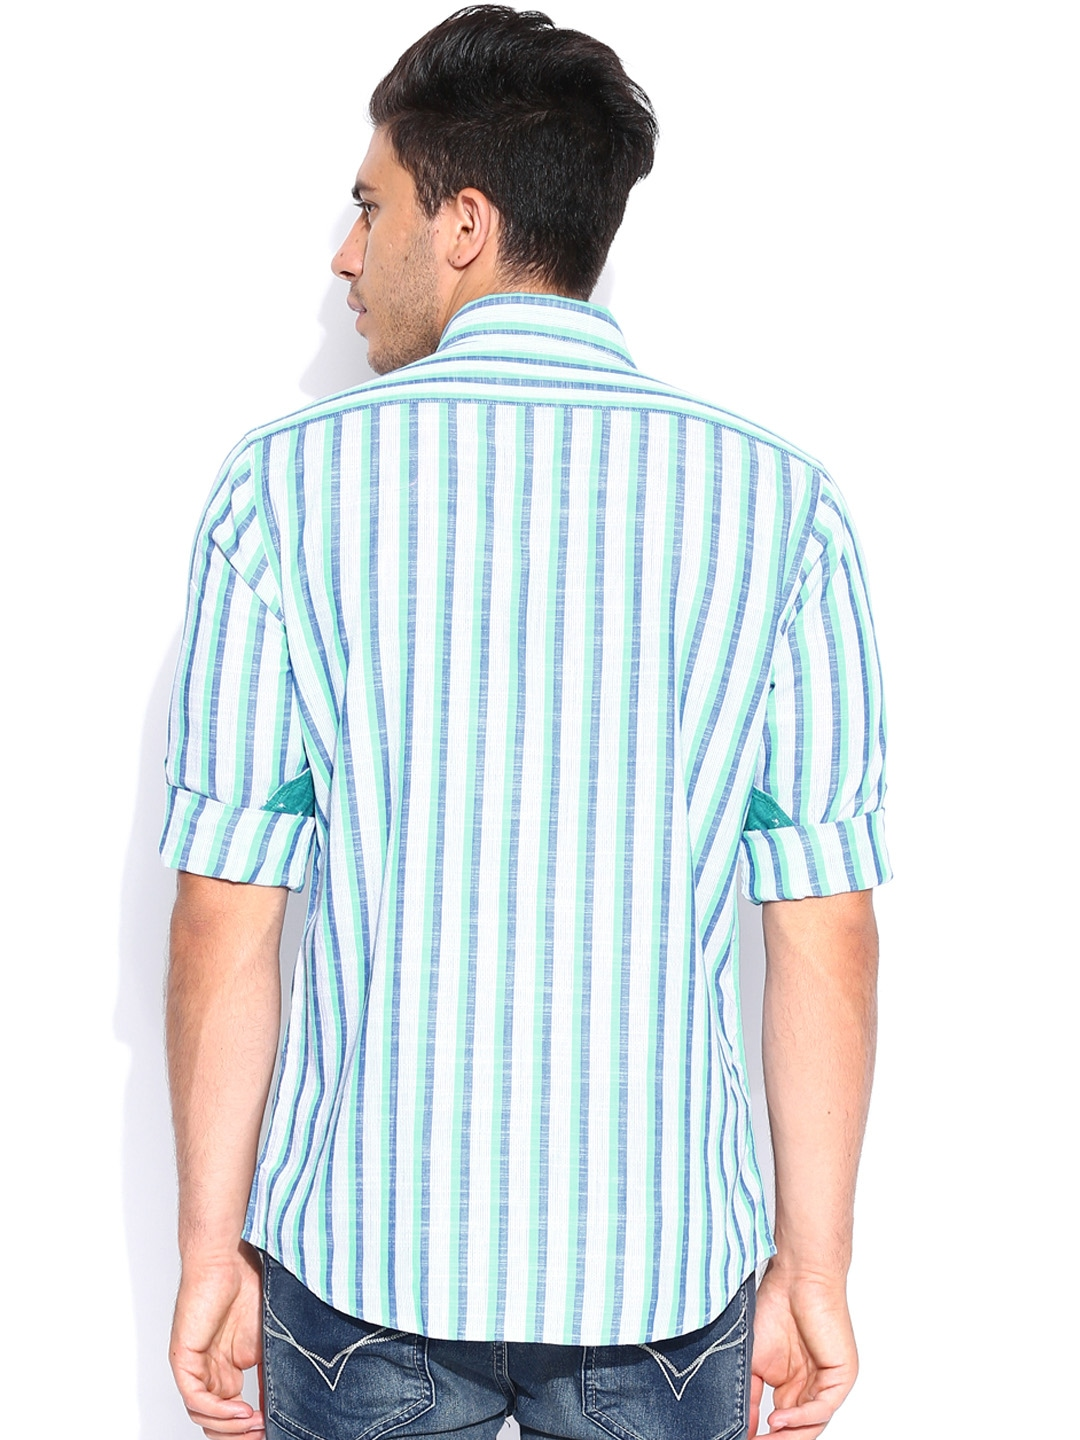 Myntra Colorplus Blue White Striped Tailored Fit Smart